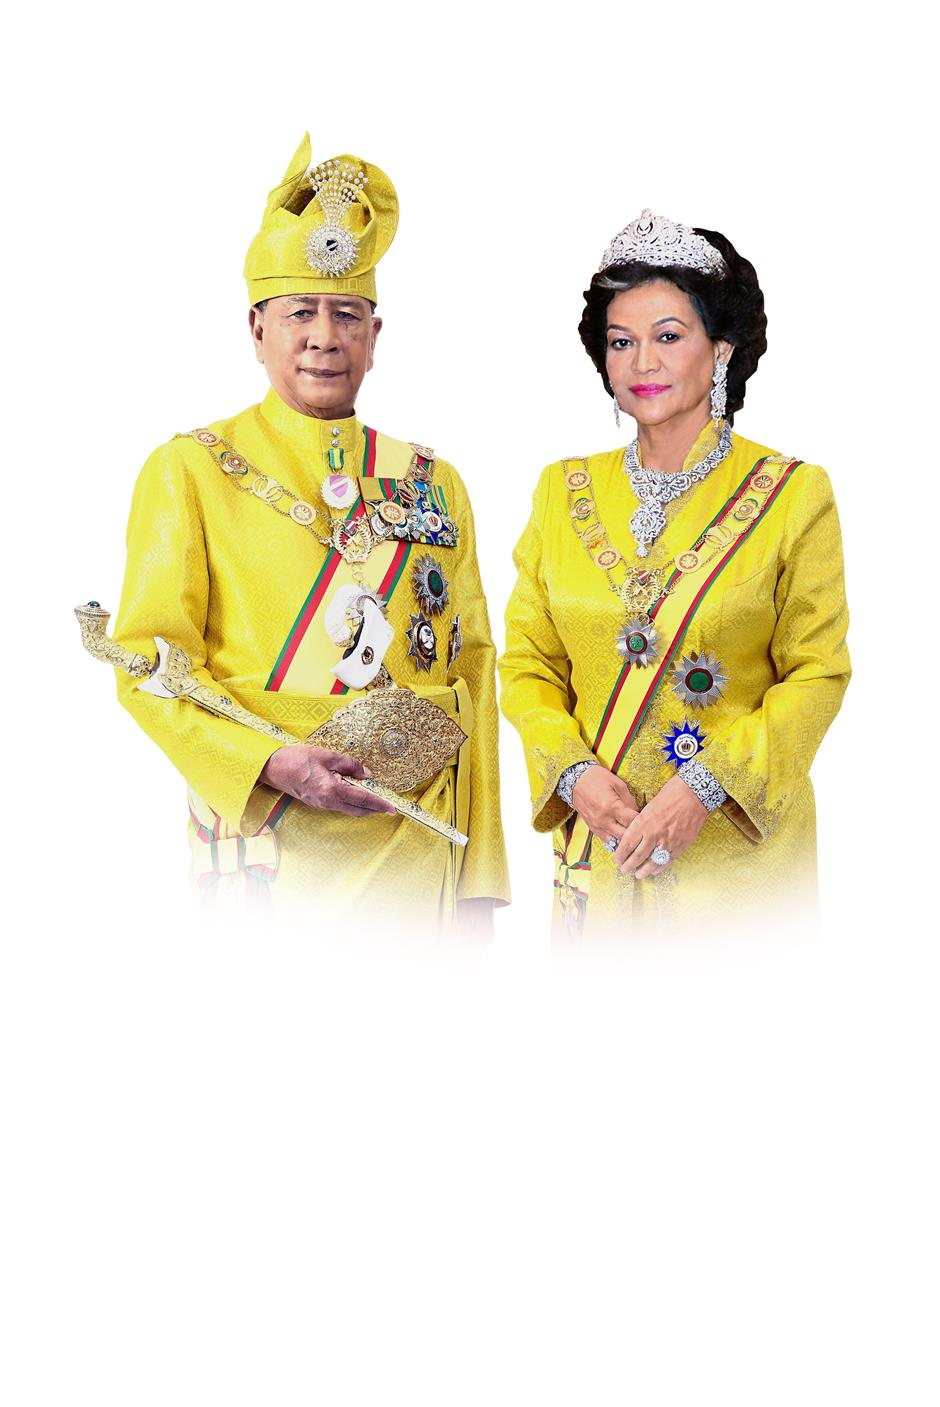 His Royal Highness Sultan Sallehuddin Ibni Almarhum Sultan Badlishah and Her Royal Highness Sultanah Maliha Almarhum Tengku Ariff.